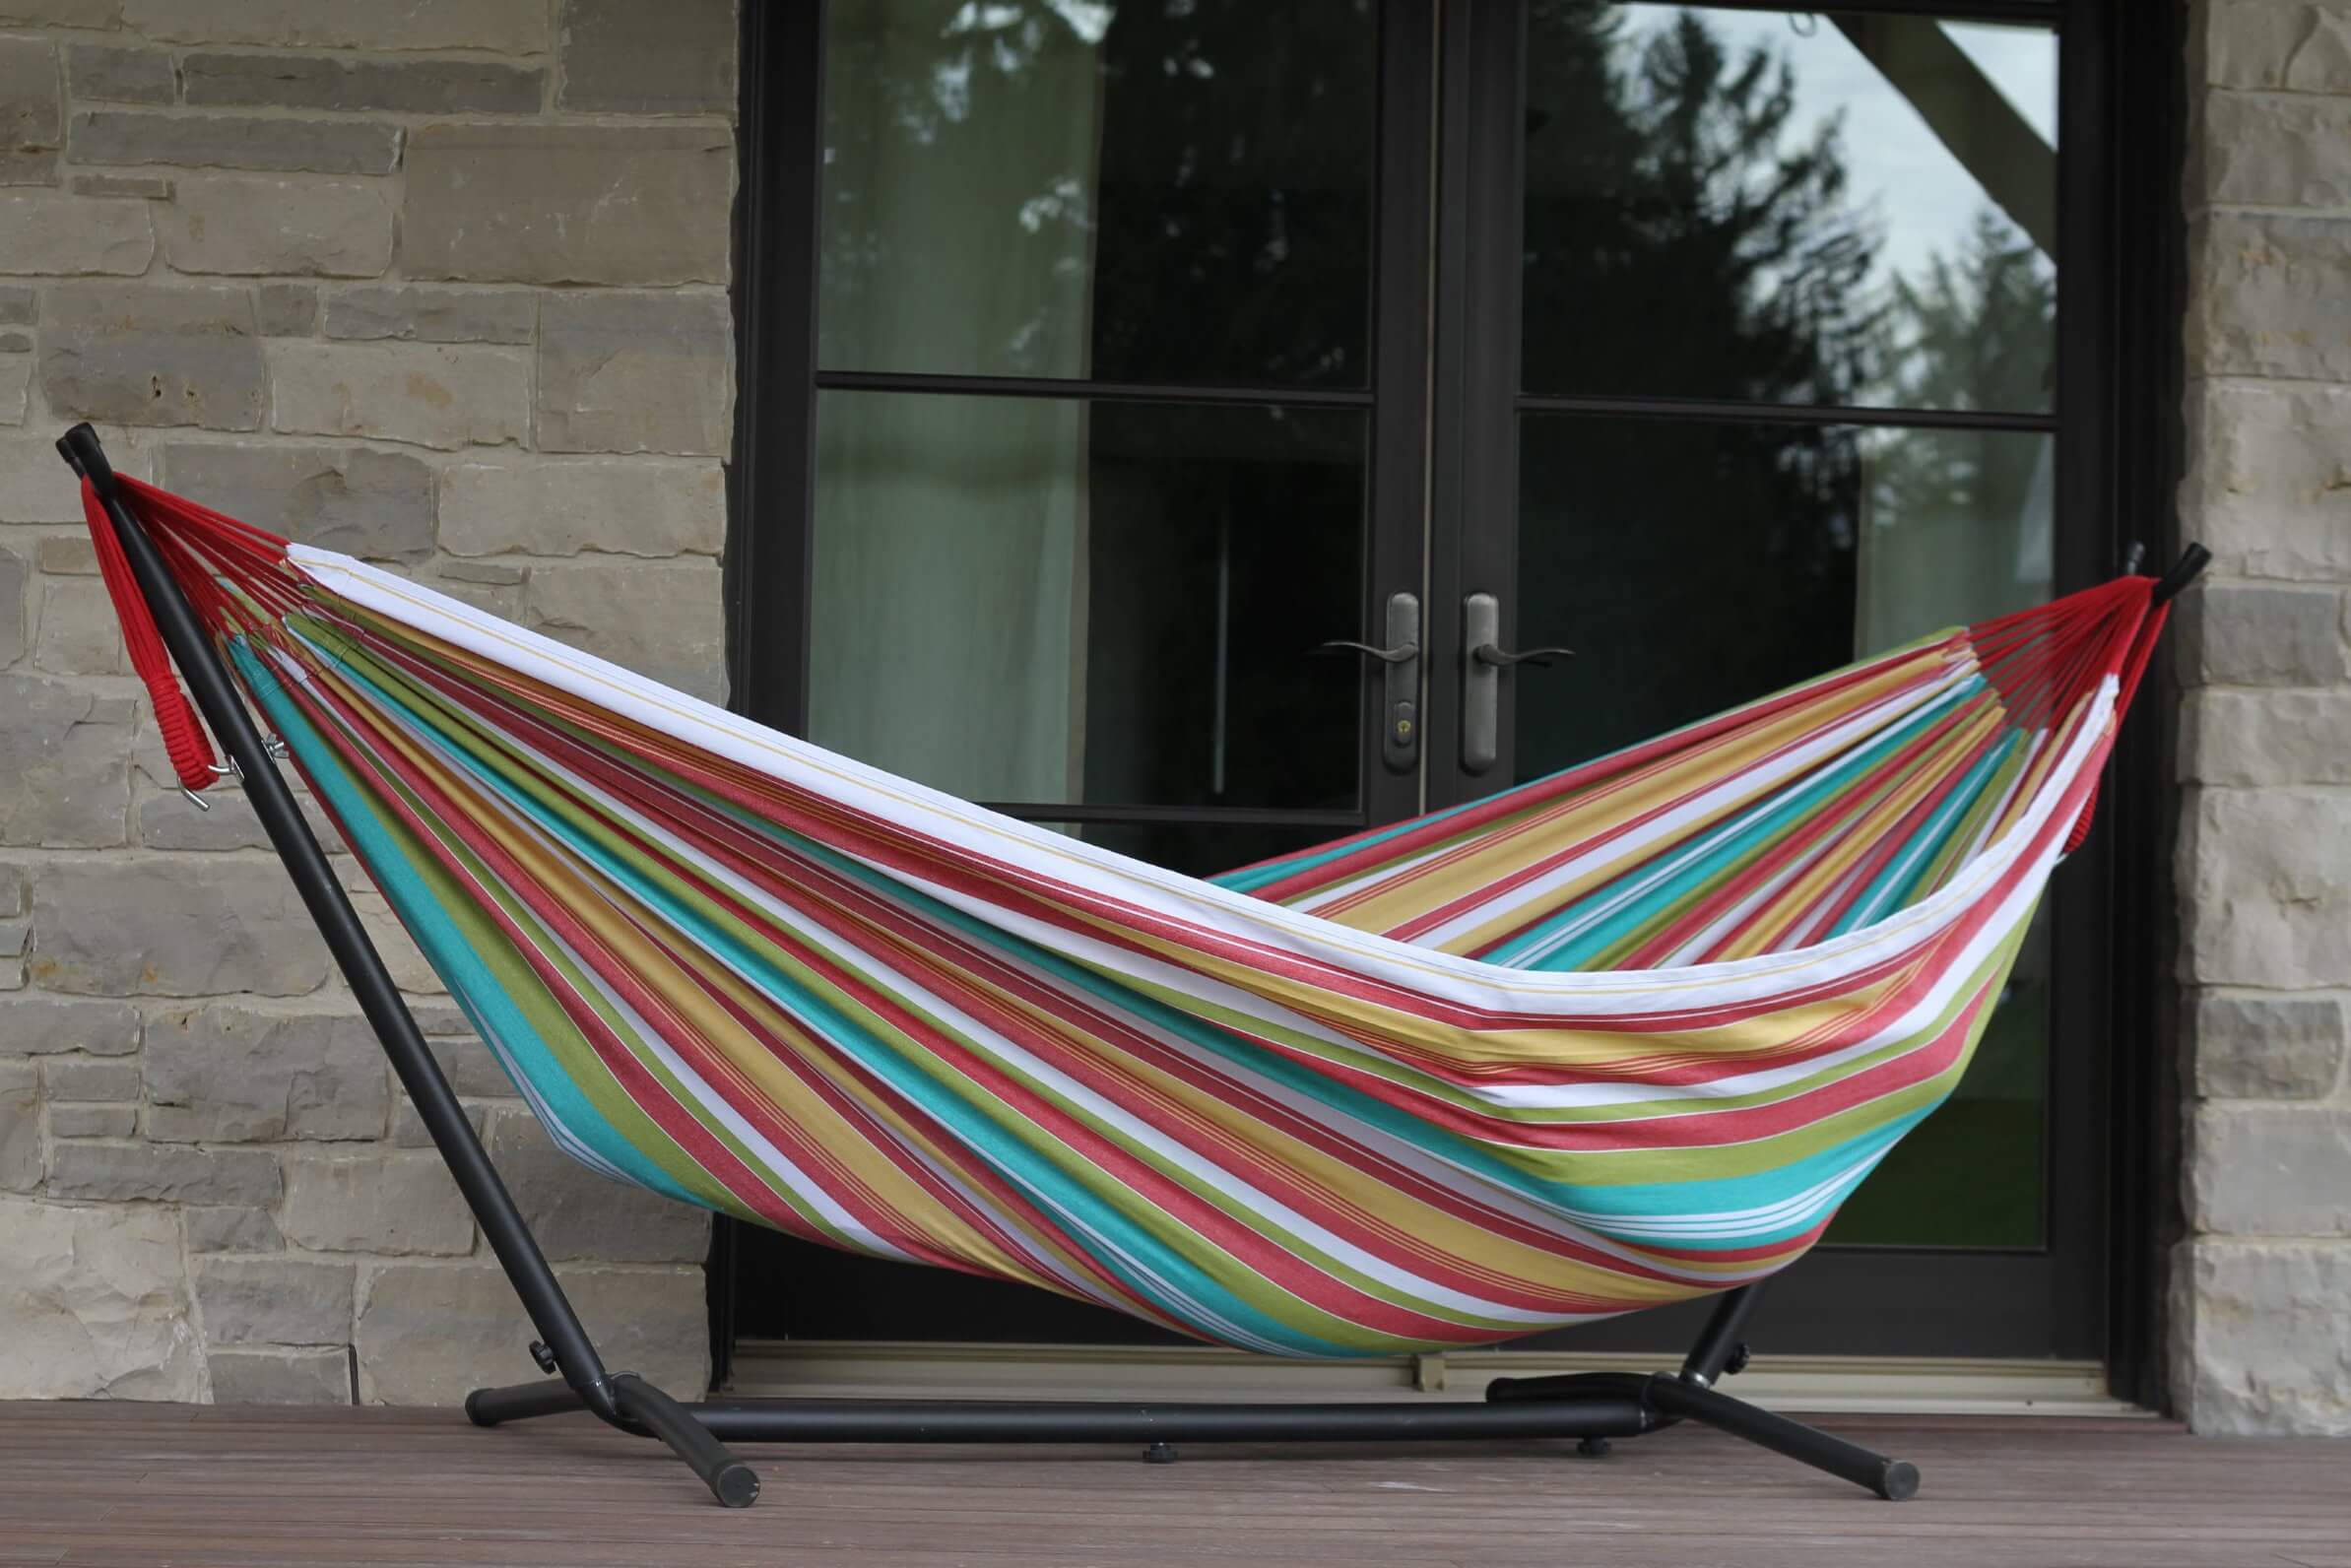 This cloth hammock is a simple design that allows occupants to sink deep down. The absence of wooden splitters on the ends, and the single attaching point on each side, lets this hammock fold and make a cozy cocoon.